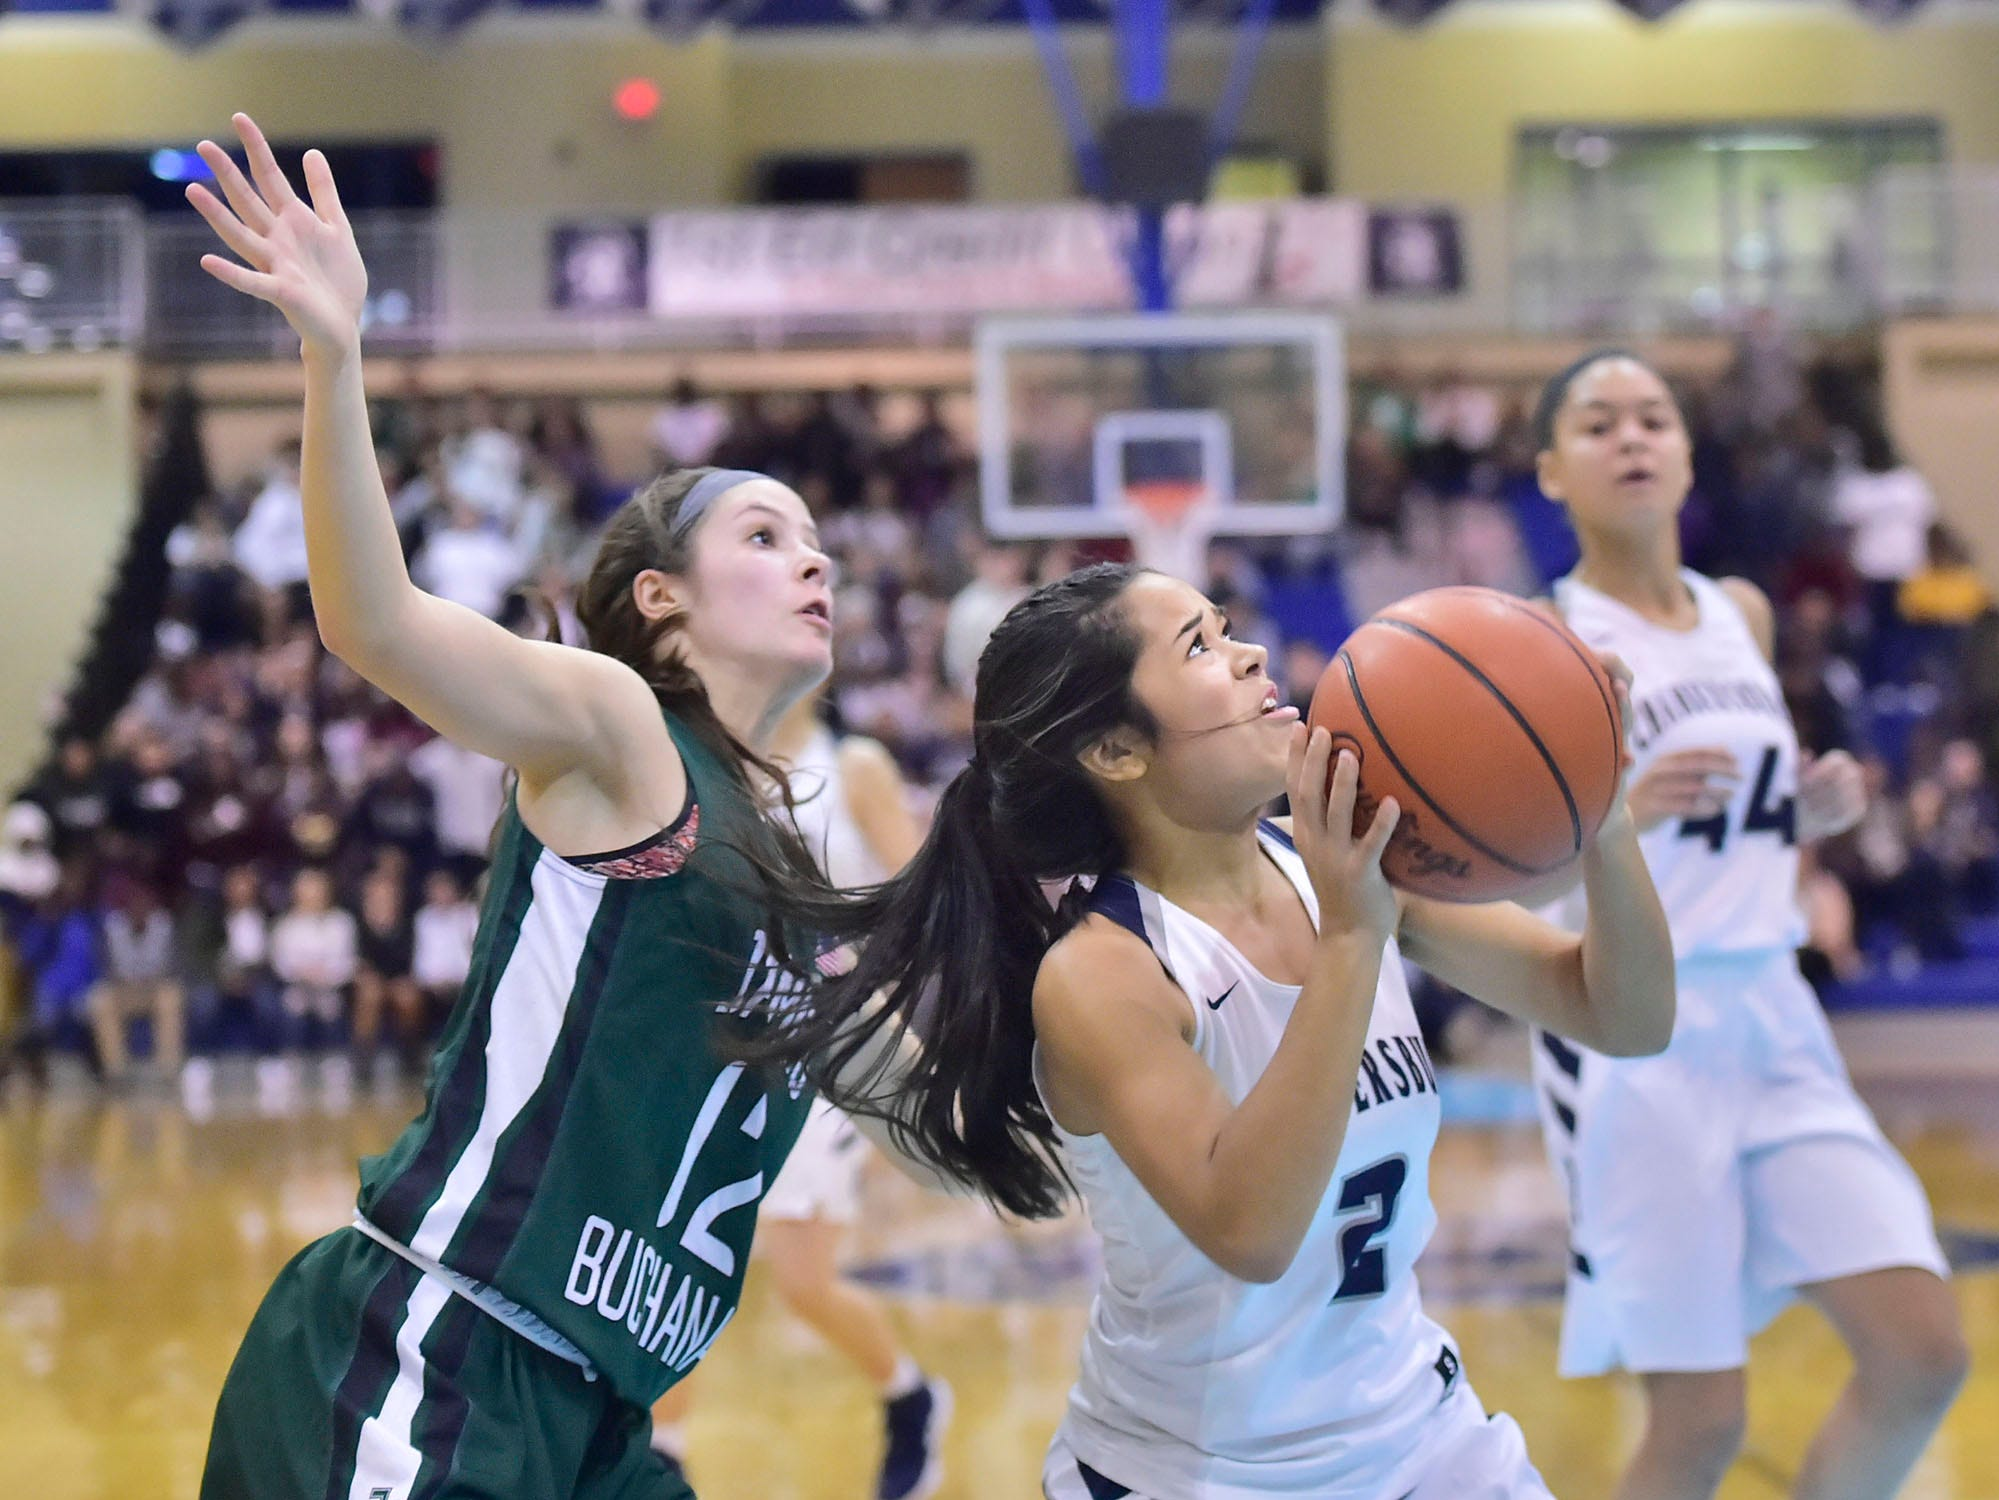 Chambersburg's Erin Patillo (2) drives to the basket to tie the game as James Buchanan's Hannah Kimmel defends during the Franklin County Tip-Off Tournament, Friday, Dec. 7, 2018.